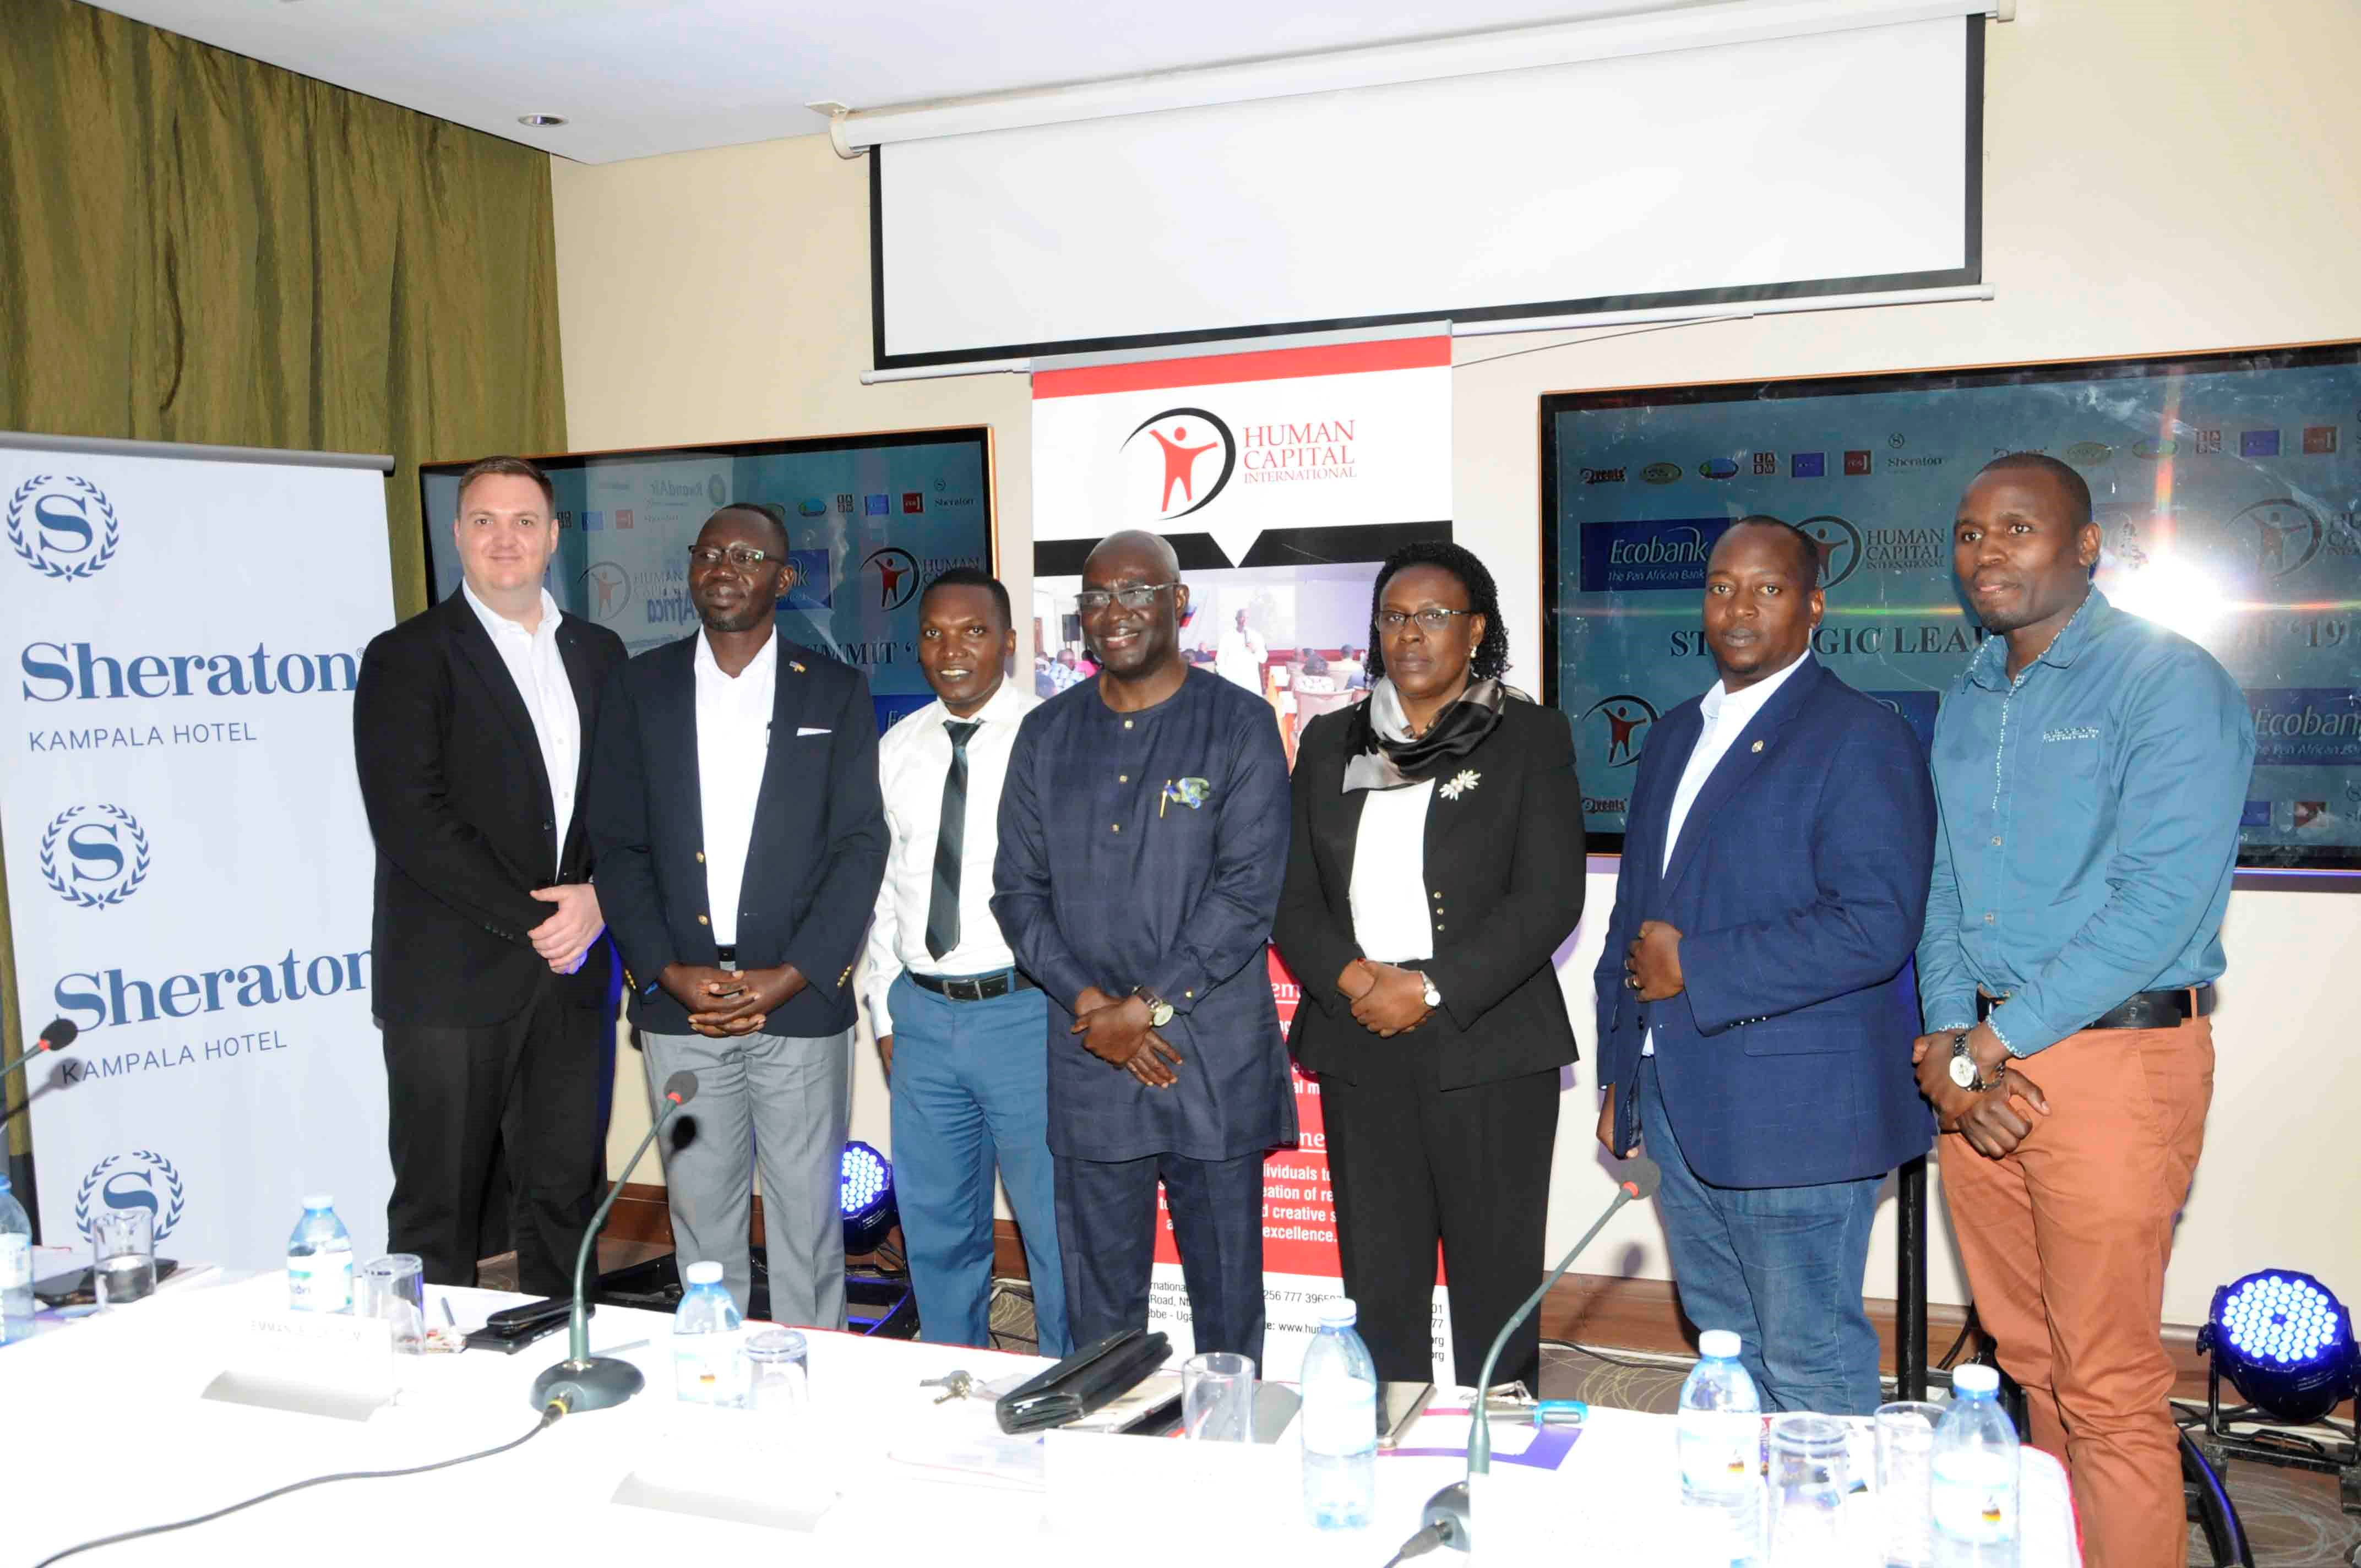 Emmanuel Dei- Tumi ; Chief Executive Office Human Capital International (4th from left) standing with sponsors of the 1st Strategic Leadership Summit set to happen on 20th of February at the Kampala Serena Hotel.